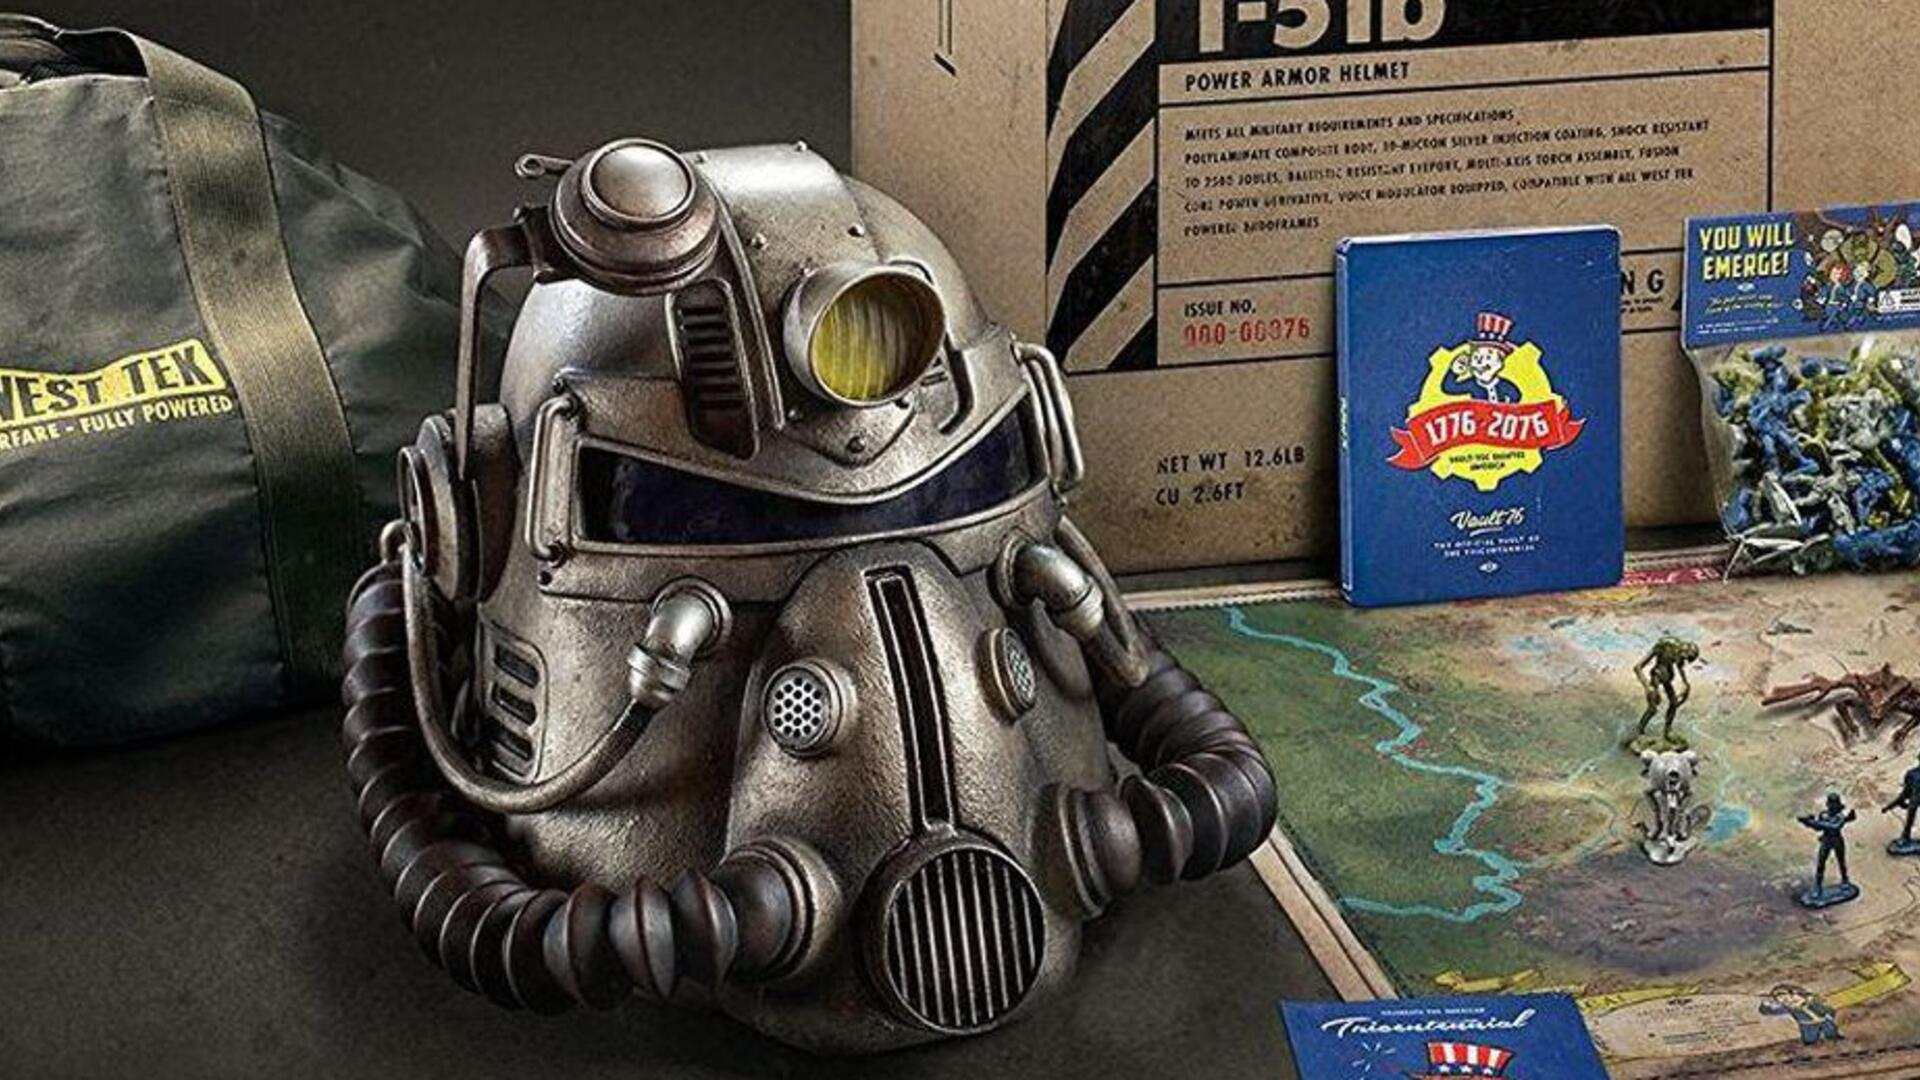 Bethesda Swapping Nylon Fallout 76 Bags for Canvas Ones After Sustained Social Media Backlash